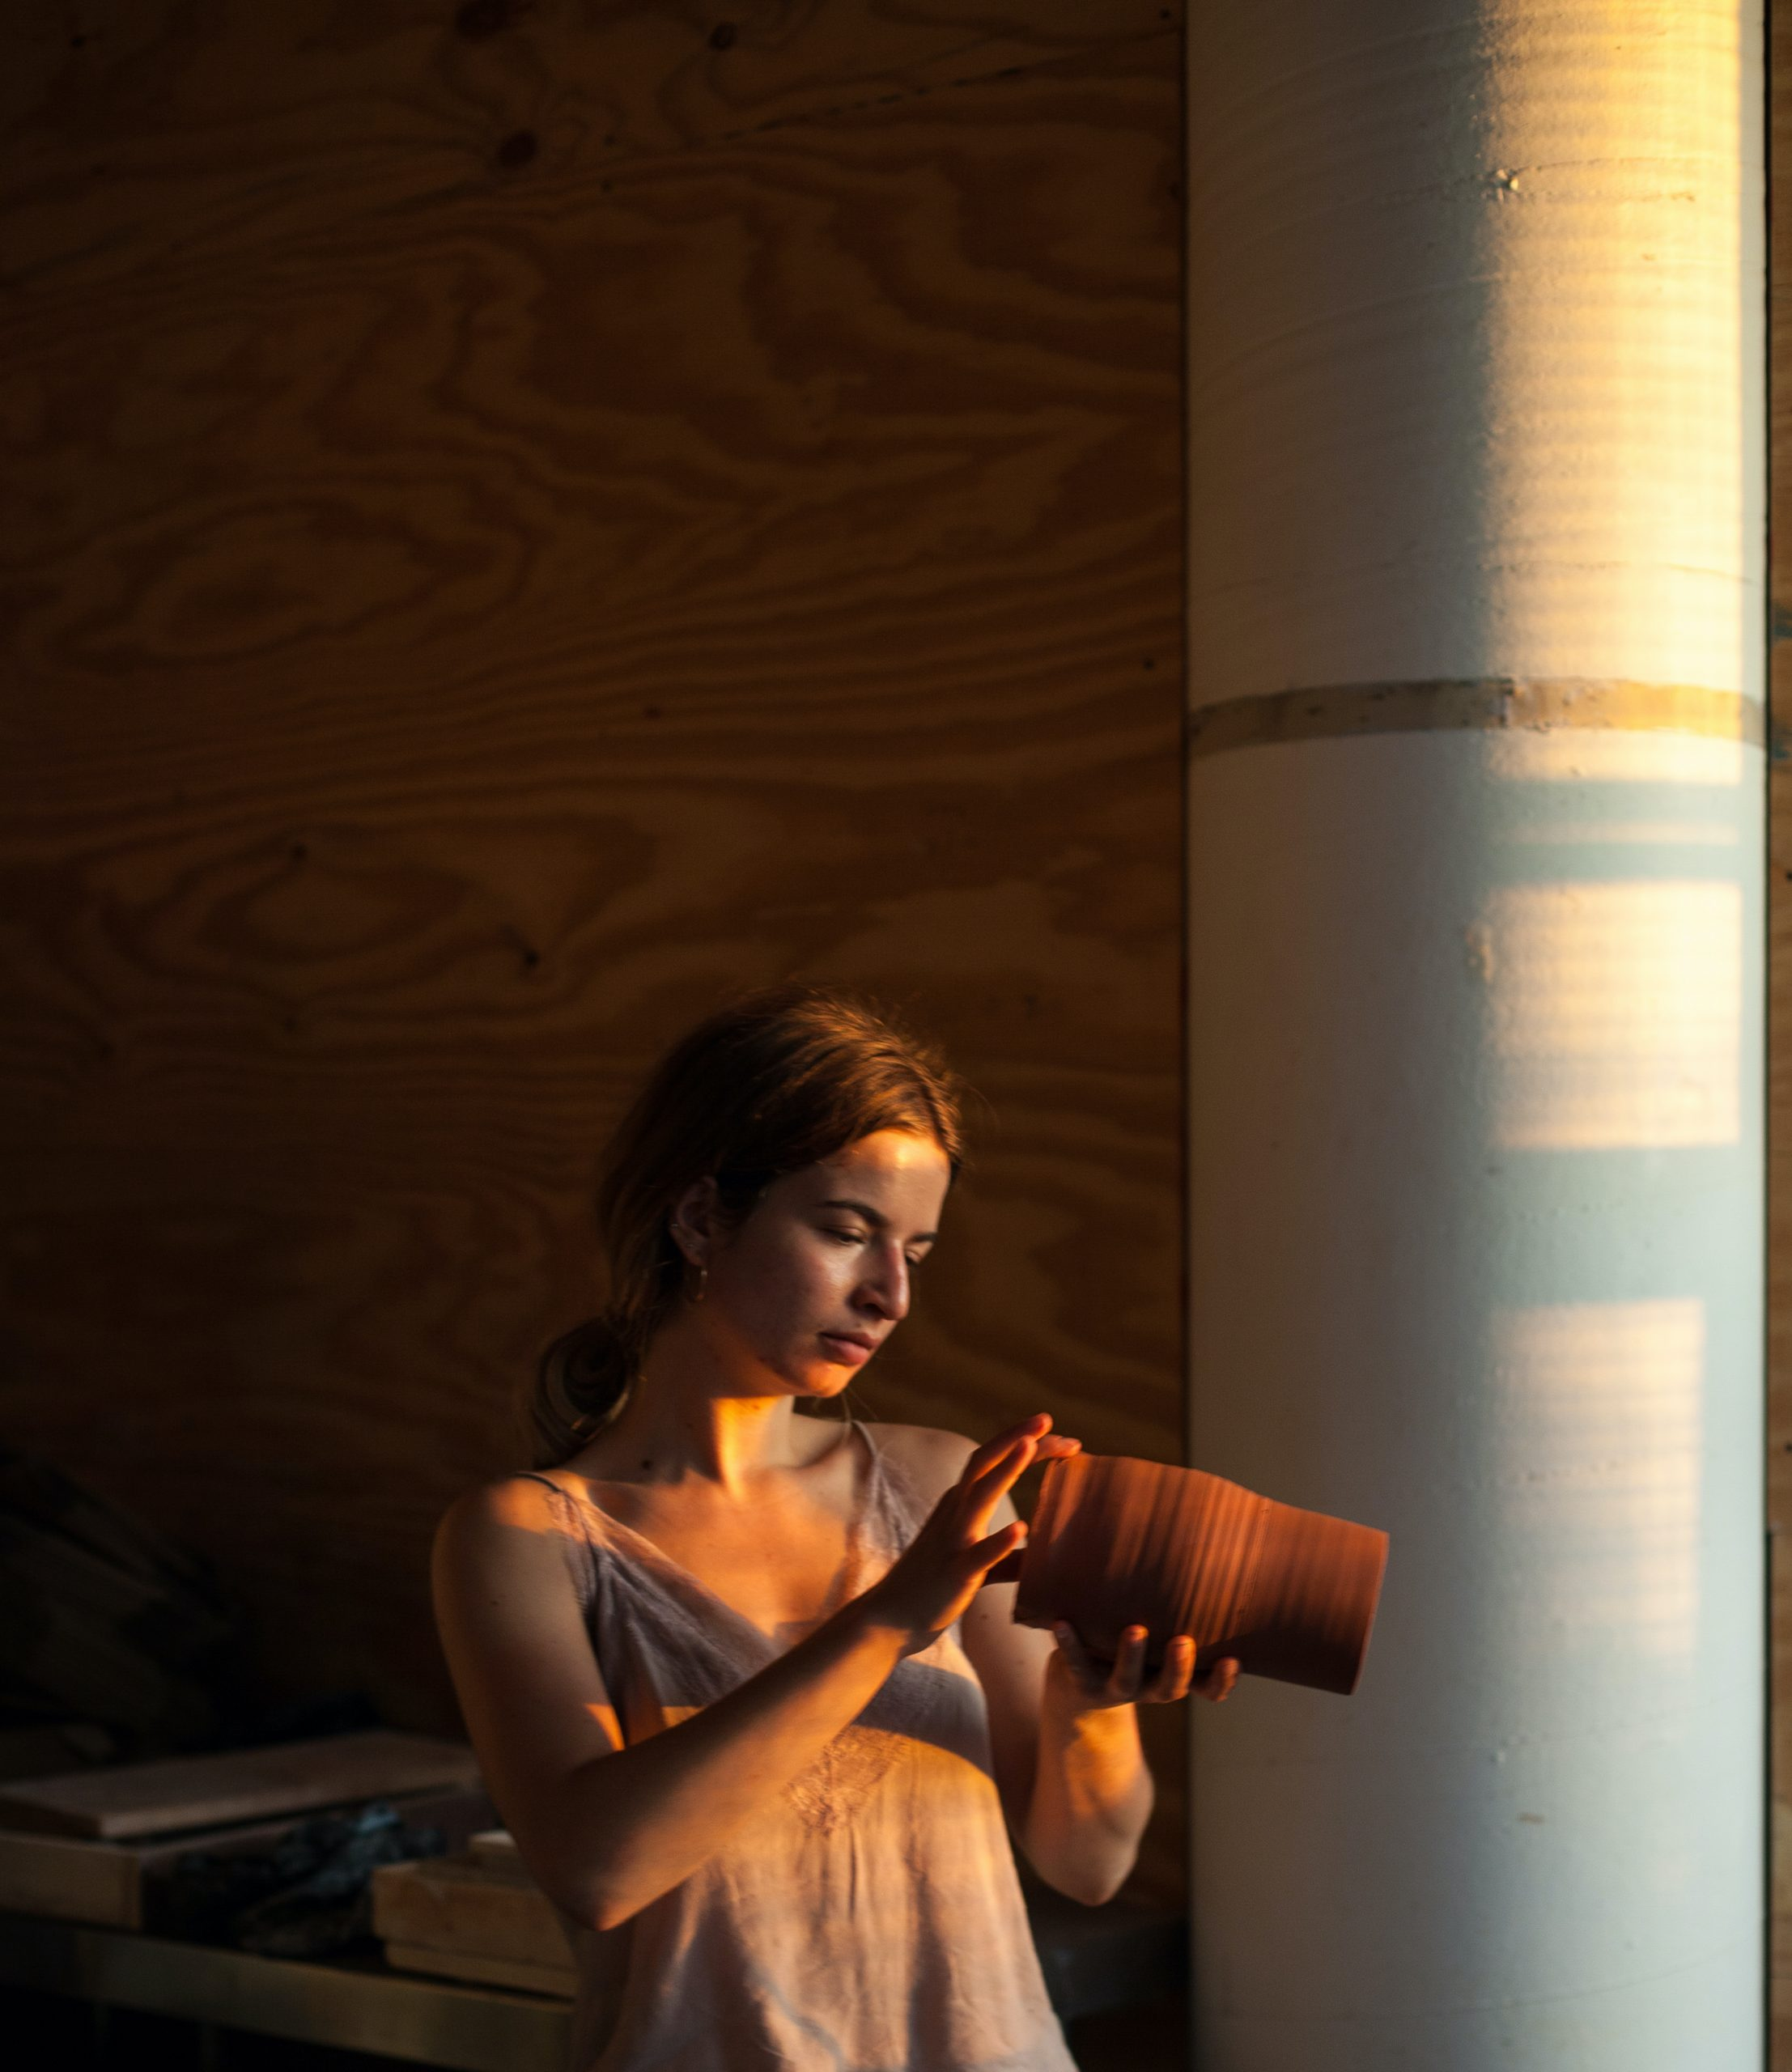 Artist Karina Smagulova is expertly handling a pot in a studio bathed in soft evening sunlight.